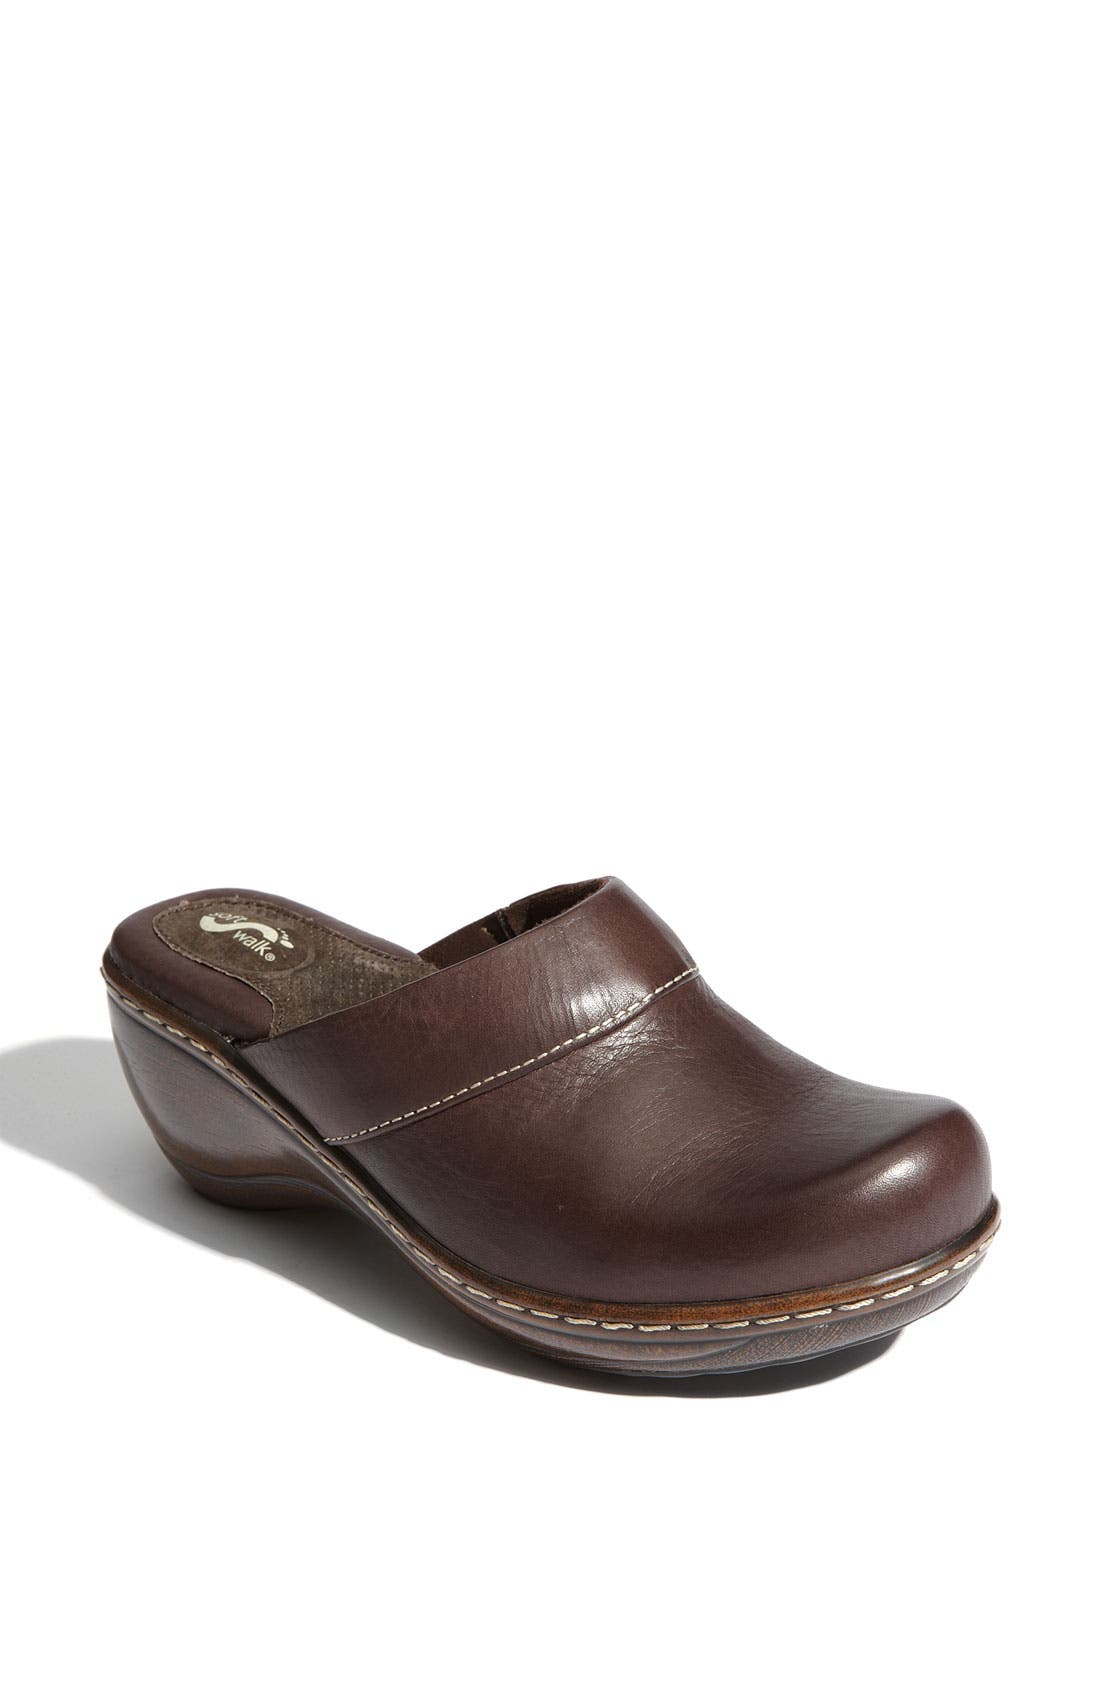 SoftWalk® 'Murietta' Clog